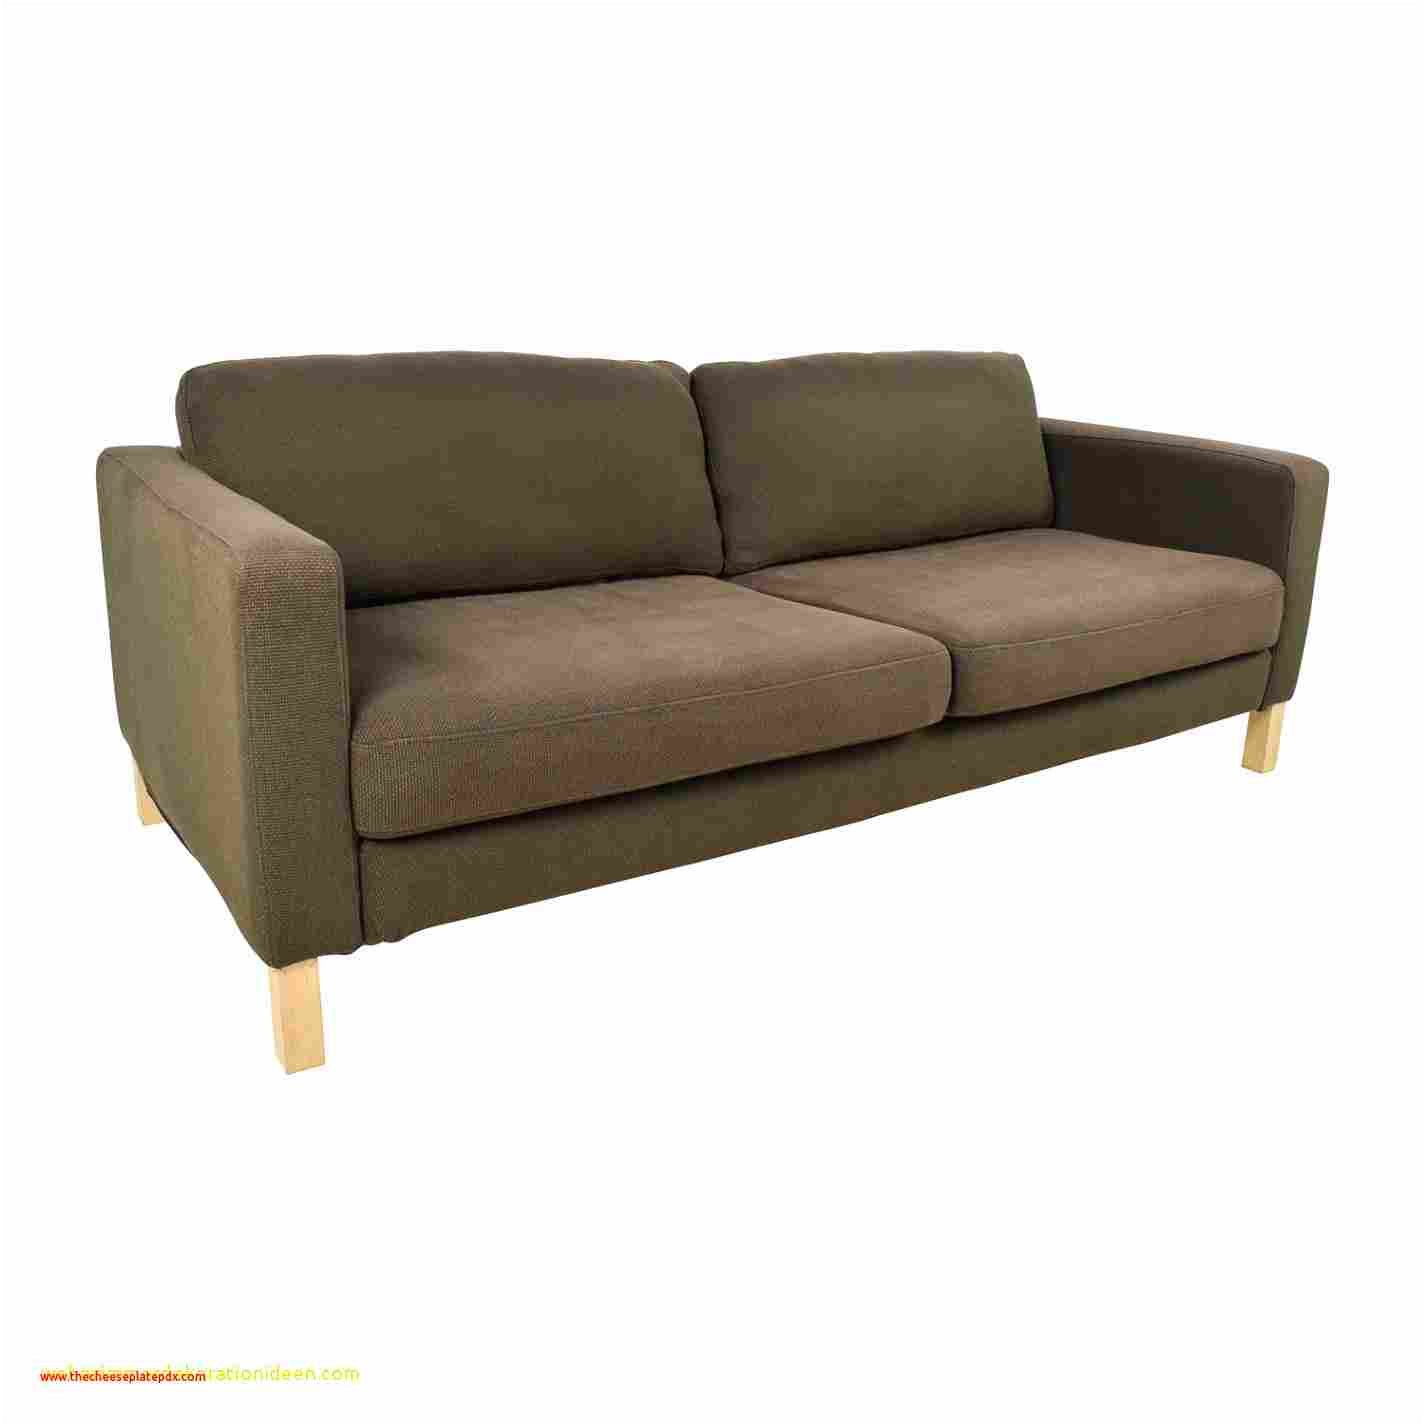 Attraktiv Couch Sessel Ikea Sofa Ikea Norsborg Sofa Comfortable Sofa Bed